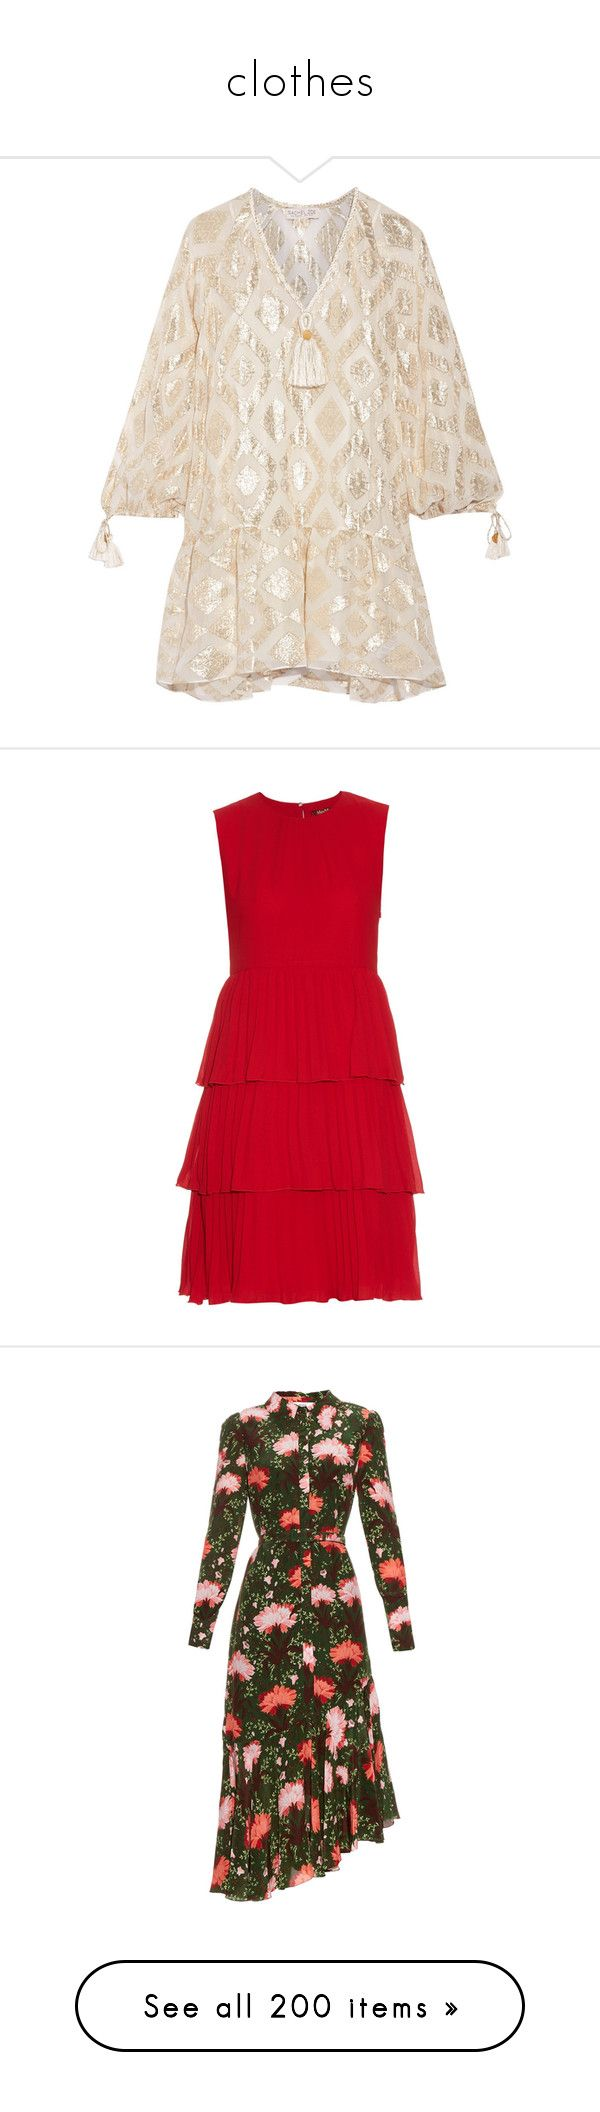 """""""clothes"""" by ms-perry ❤ liked on Polyvore featuring dresses, ivory, slip dress, metallic mini dress, pink slip, metallic dress, bohemian dresses, red tiered dress, red pleated dress and maxmara dress"""